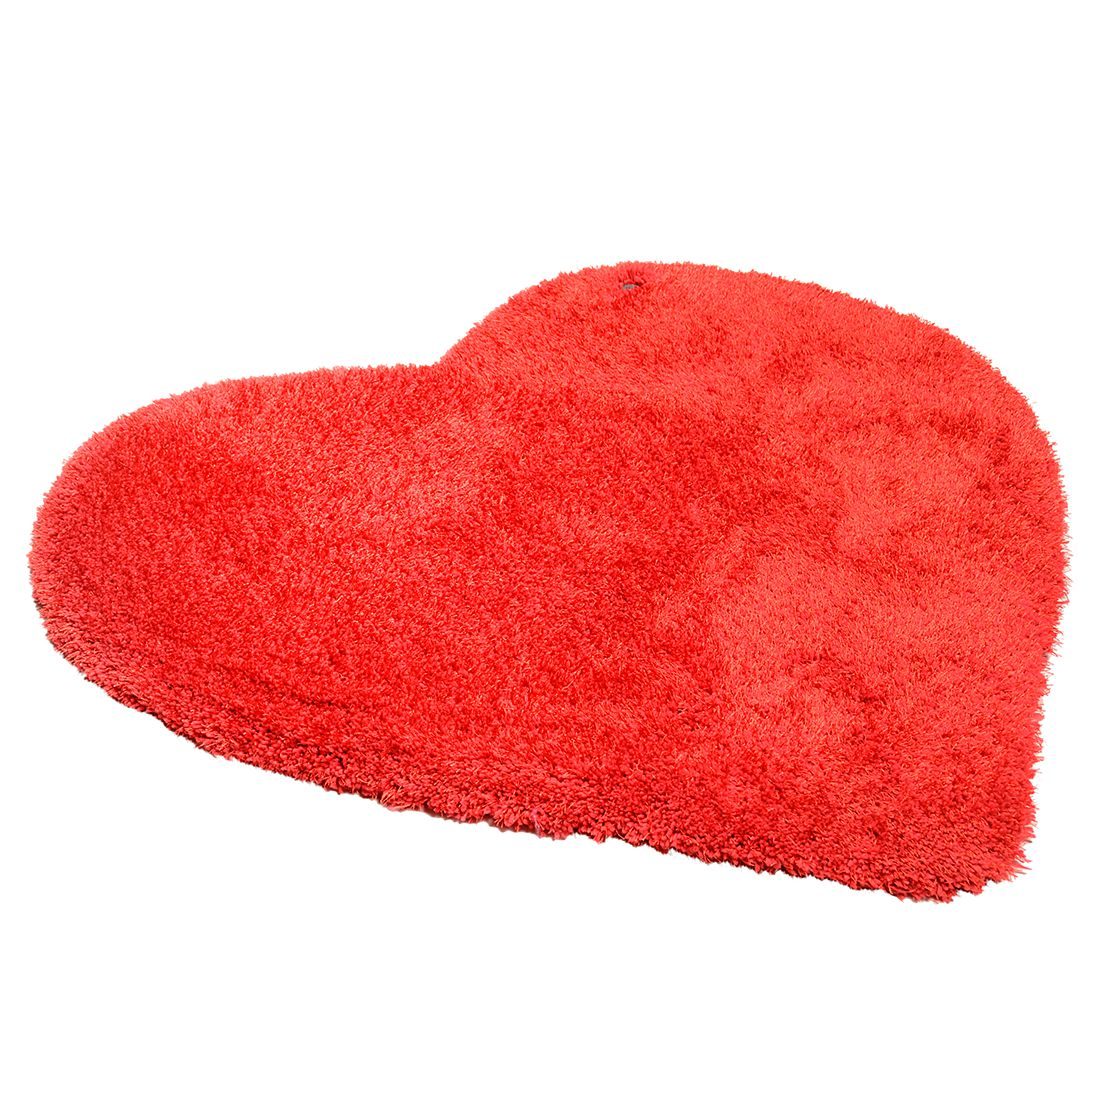 Home 24 - Tapis soft heart - rouge - dimensions : 100 x 100 cm, tom tailor